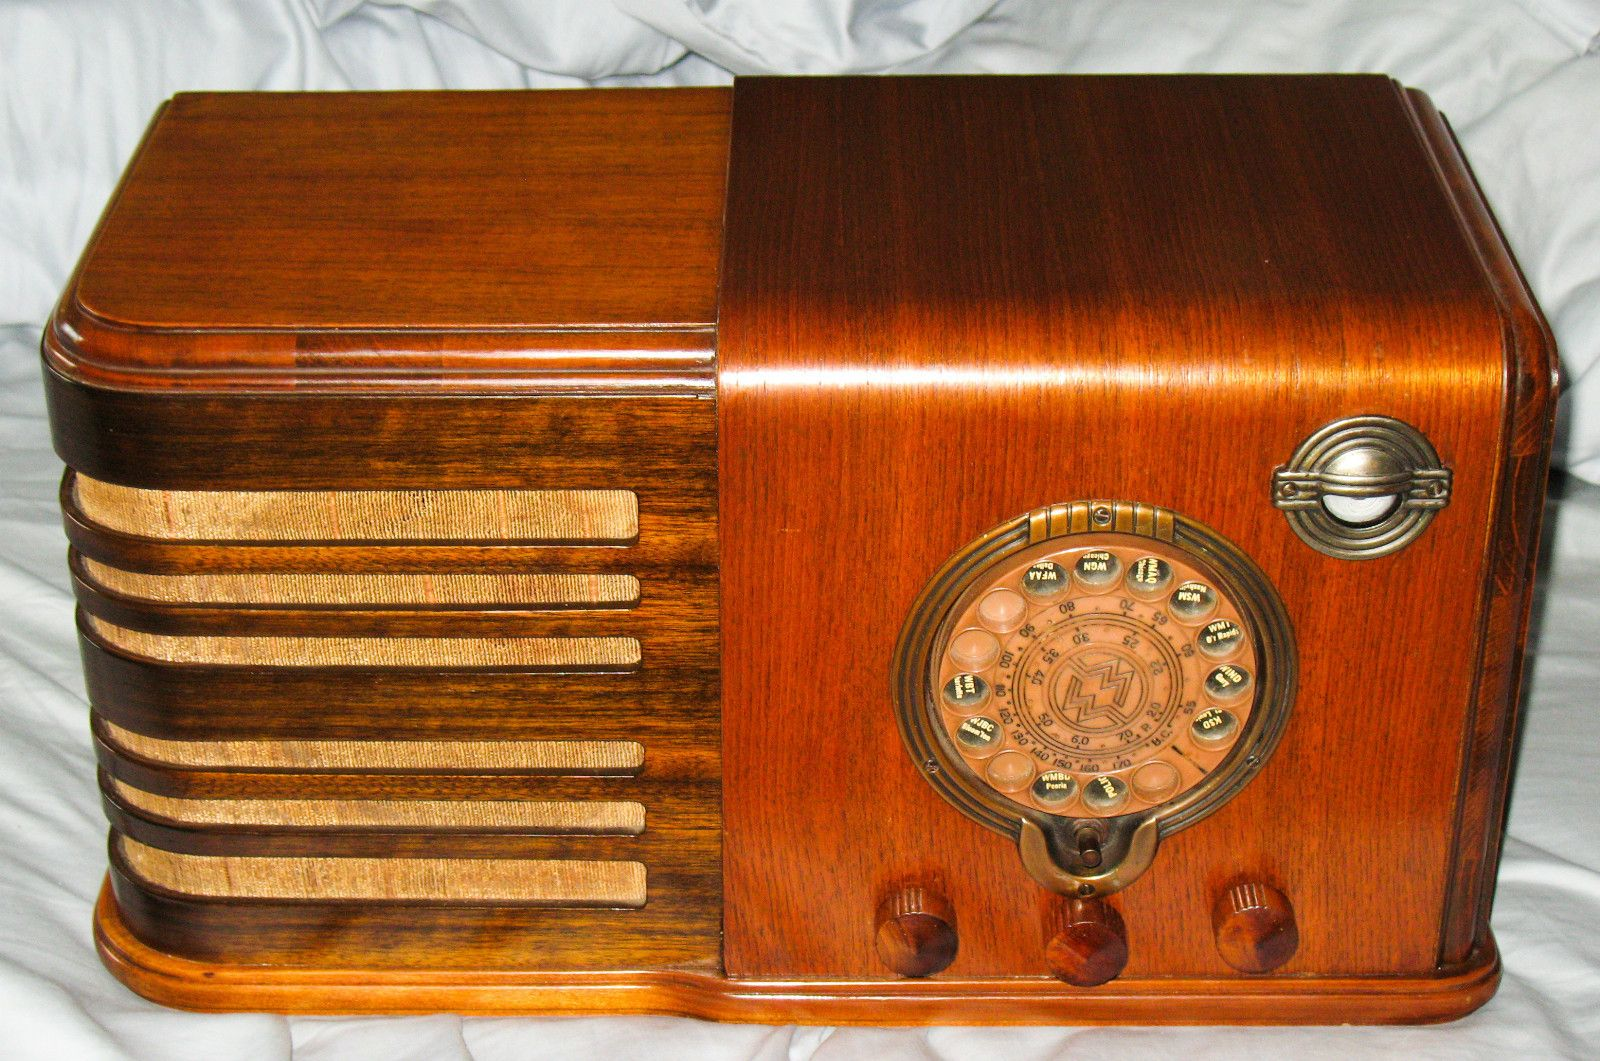 This is an Old Wood Airline Tube Radio, it's from the 1930's